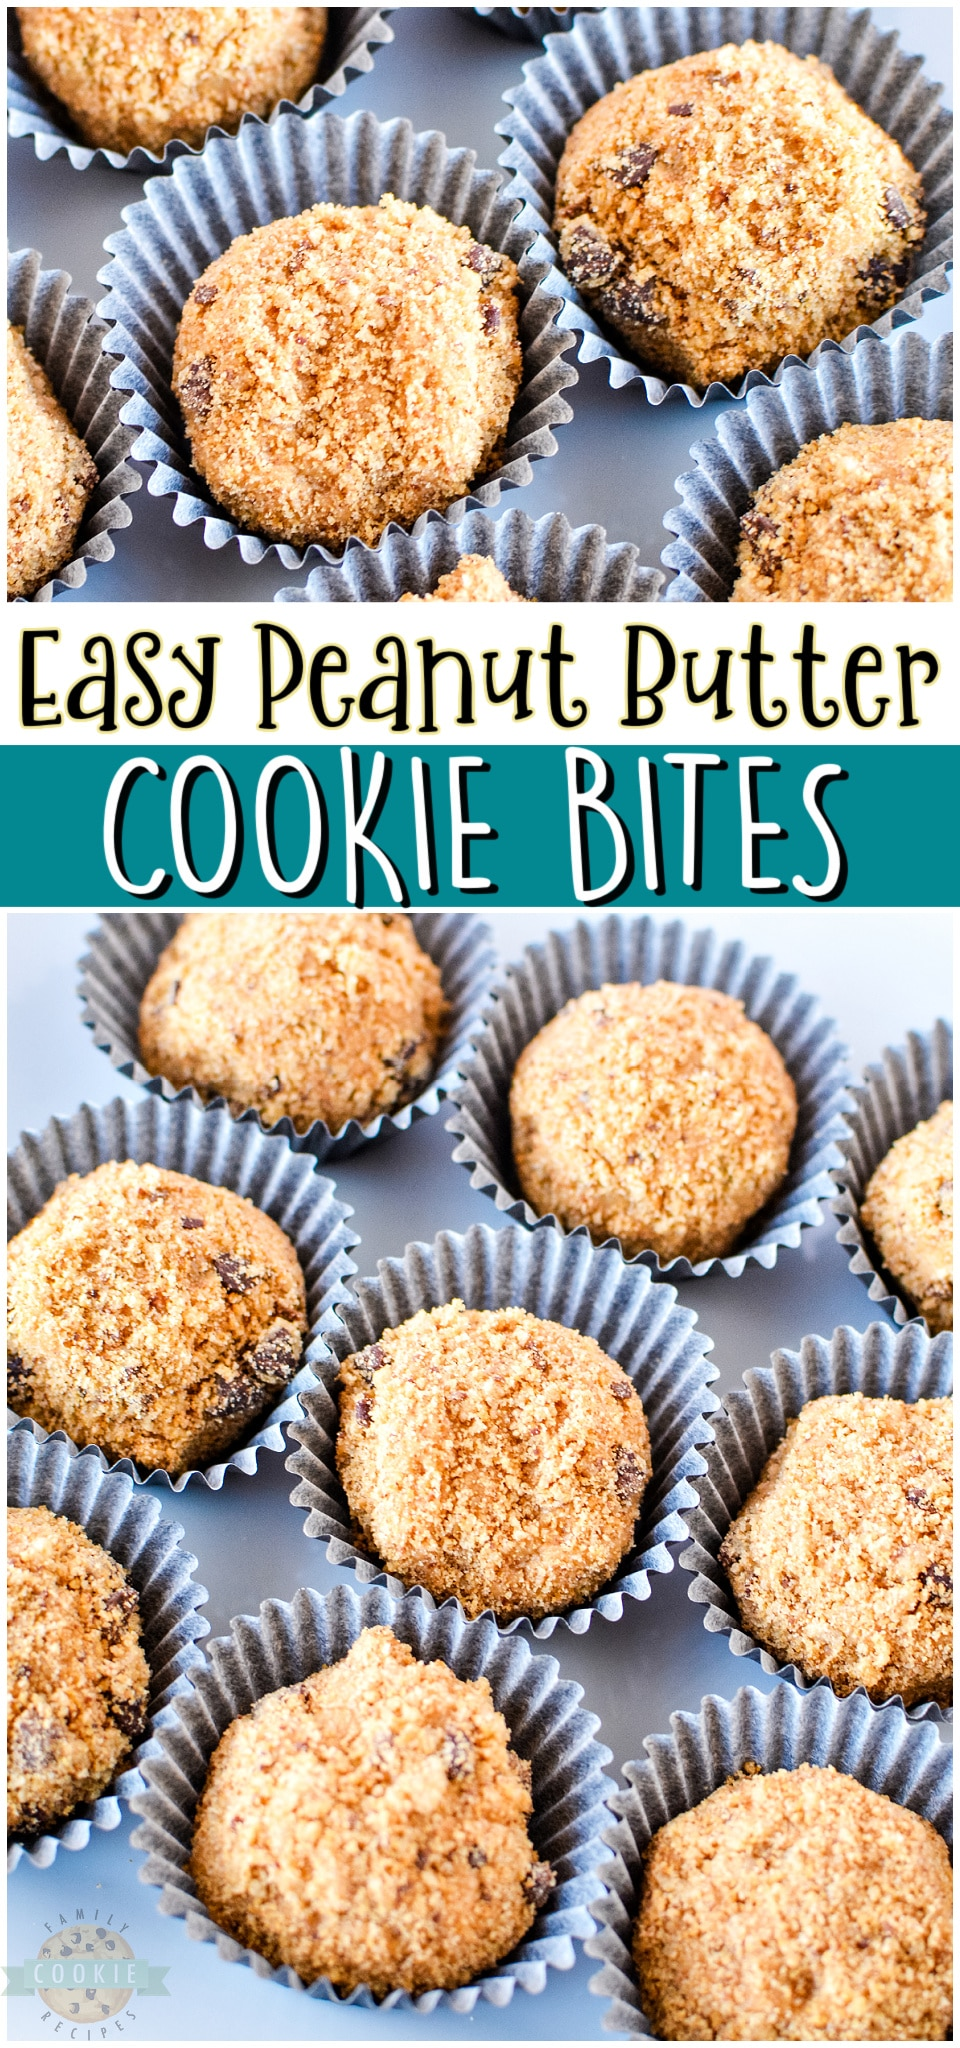 Peanut butter cookie bites made with just 3 ingredients including store-bought chocolate chip cookies, peanut butter & powdered sugar. Simple, tasty no-bake cookie recipe that is fun to make & eat!#cookies #cookiebites #nobake #peanutbutter #easyrecipe from FAMILY COOKIE RECIPES via @familycookierecipes